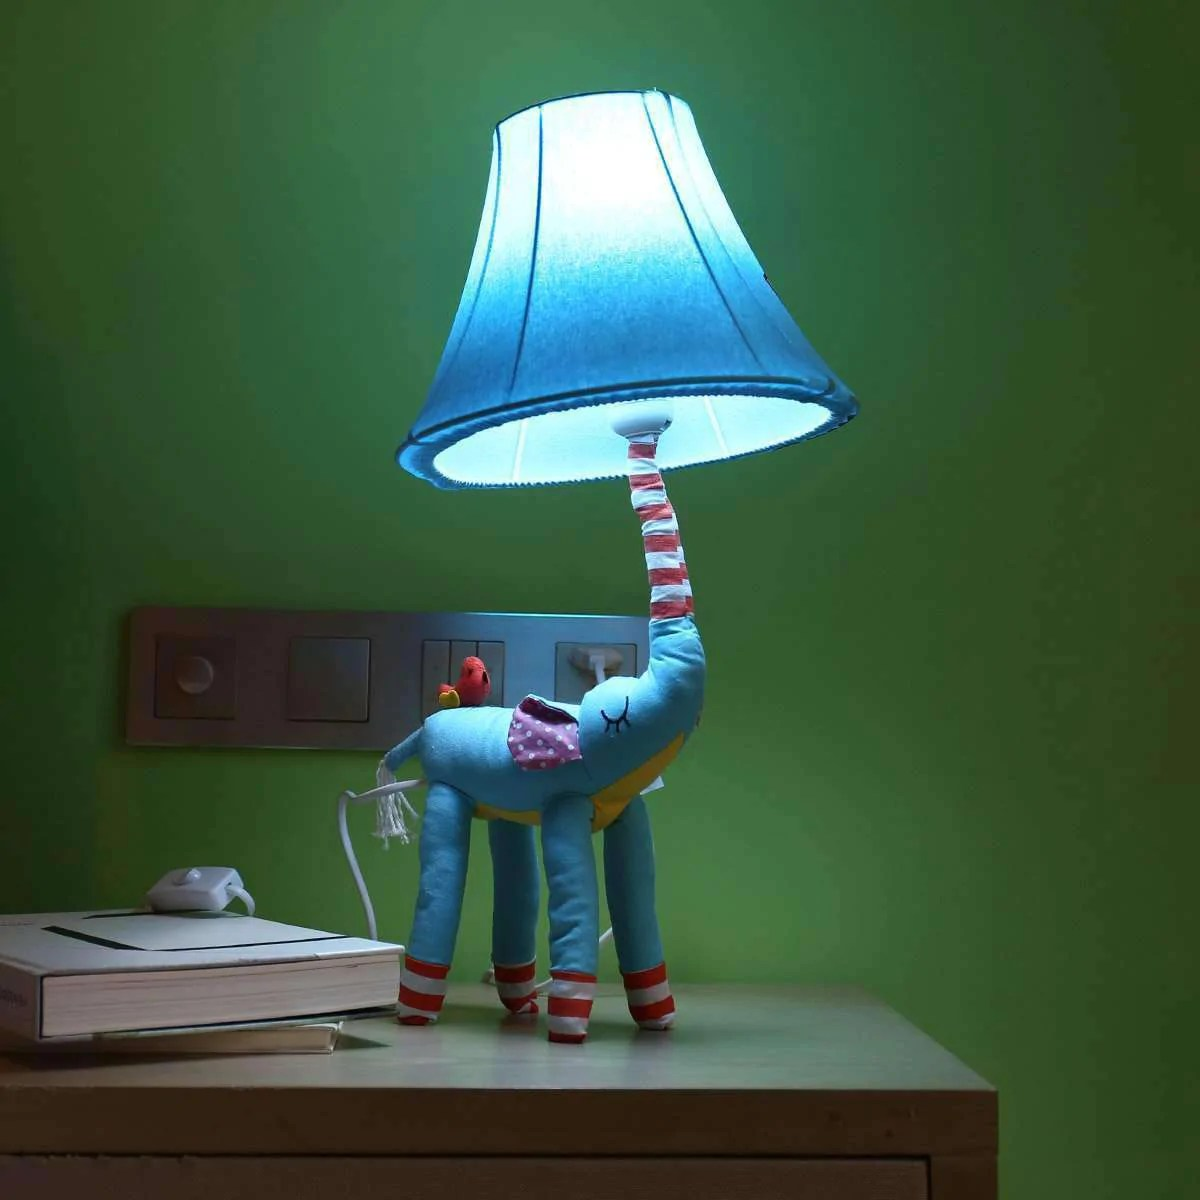 Animal Lamp For Nursery Decorative Elephant Table Lamp Nursery Room Table Night Lamp